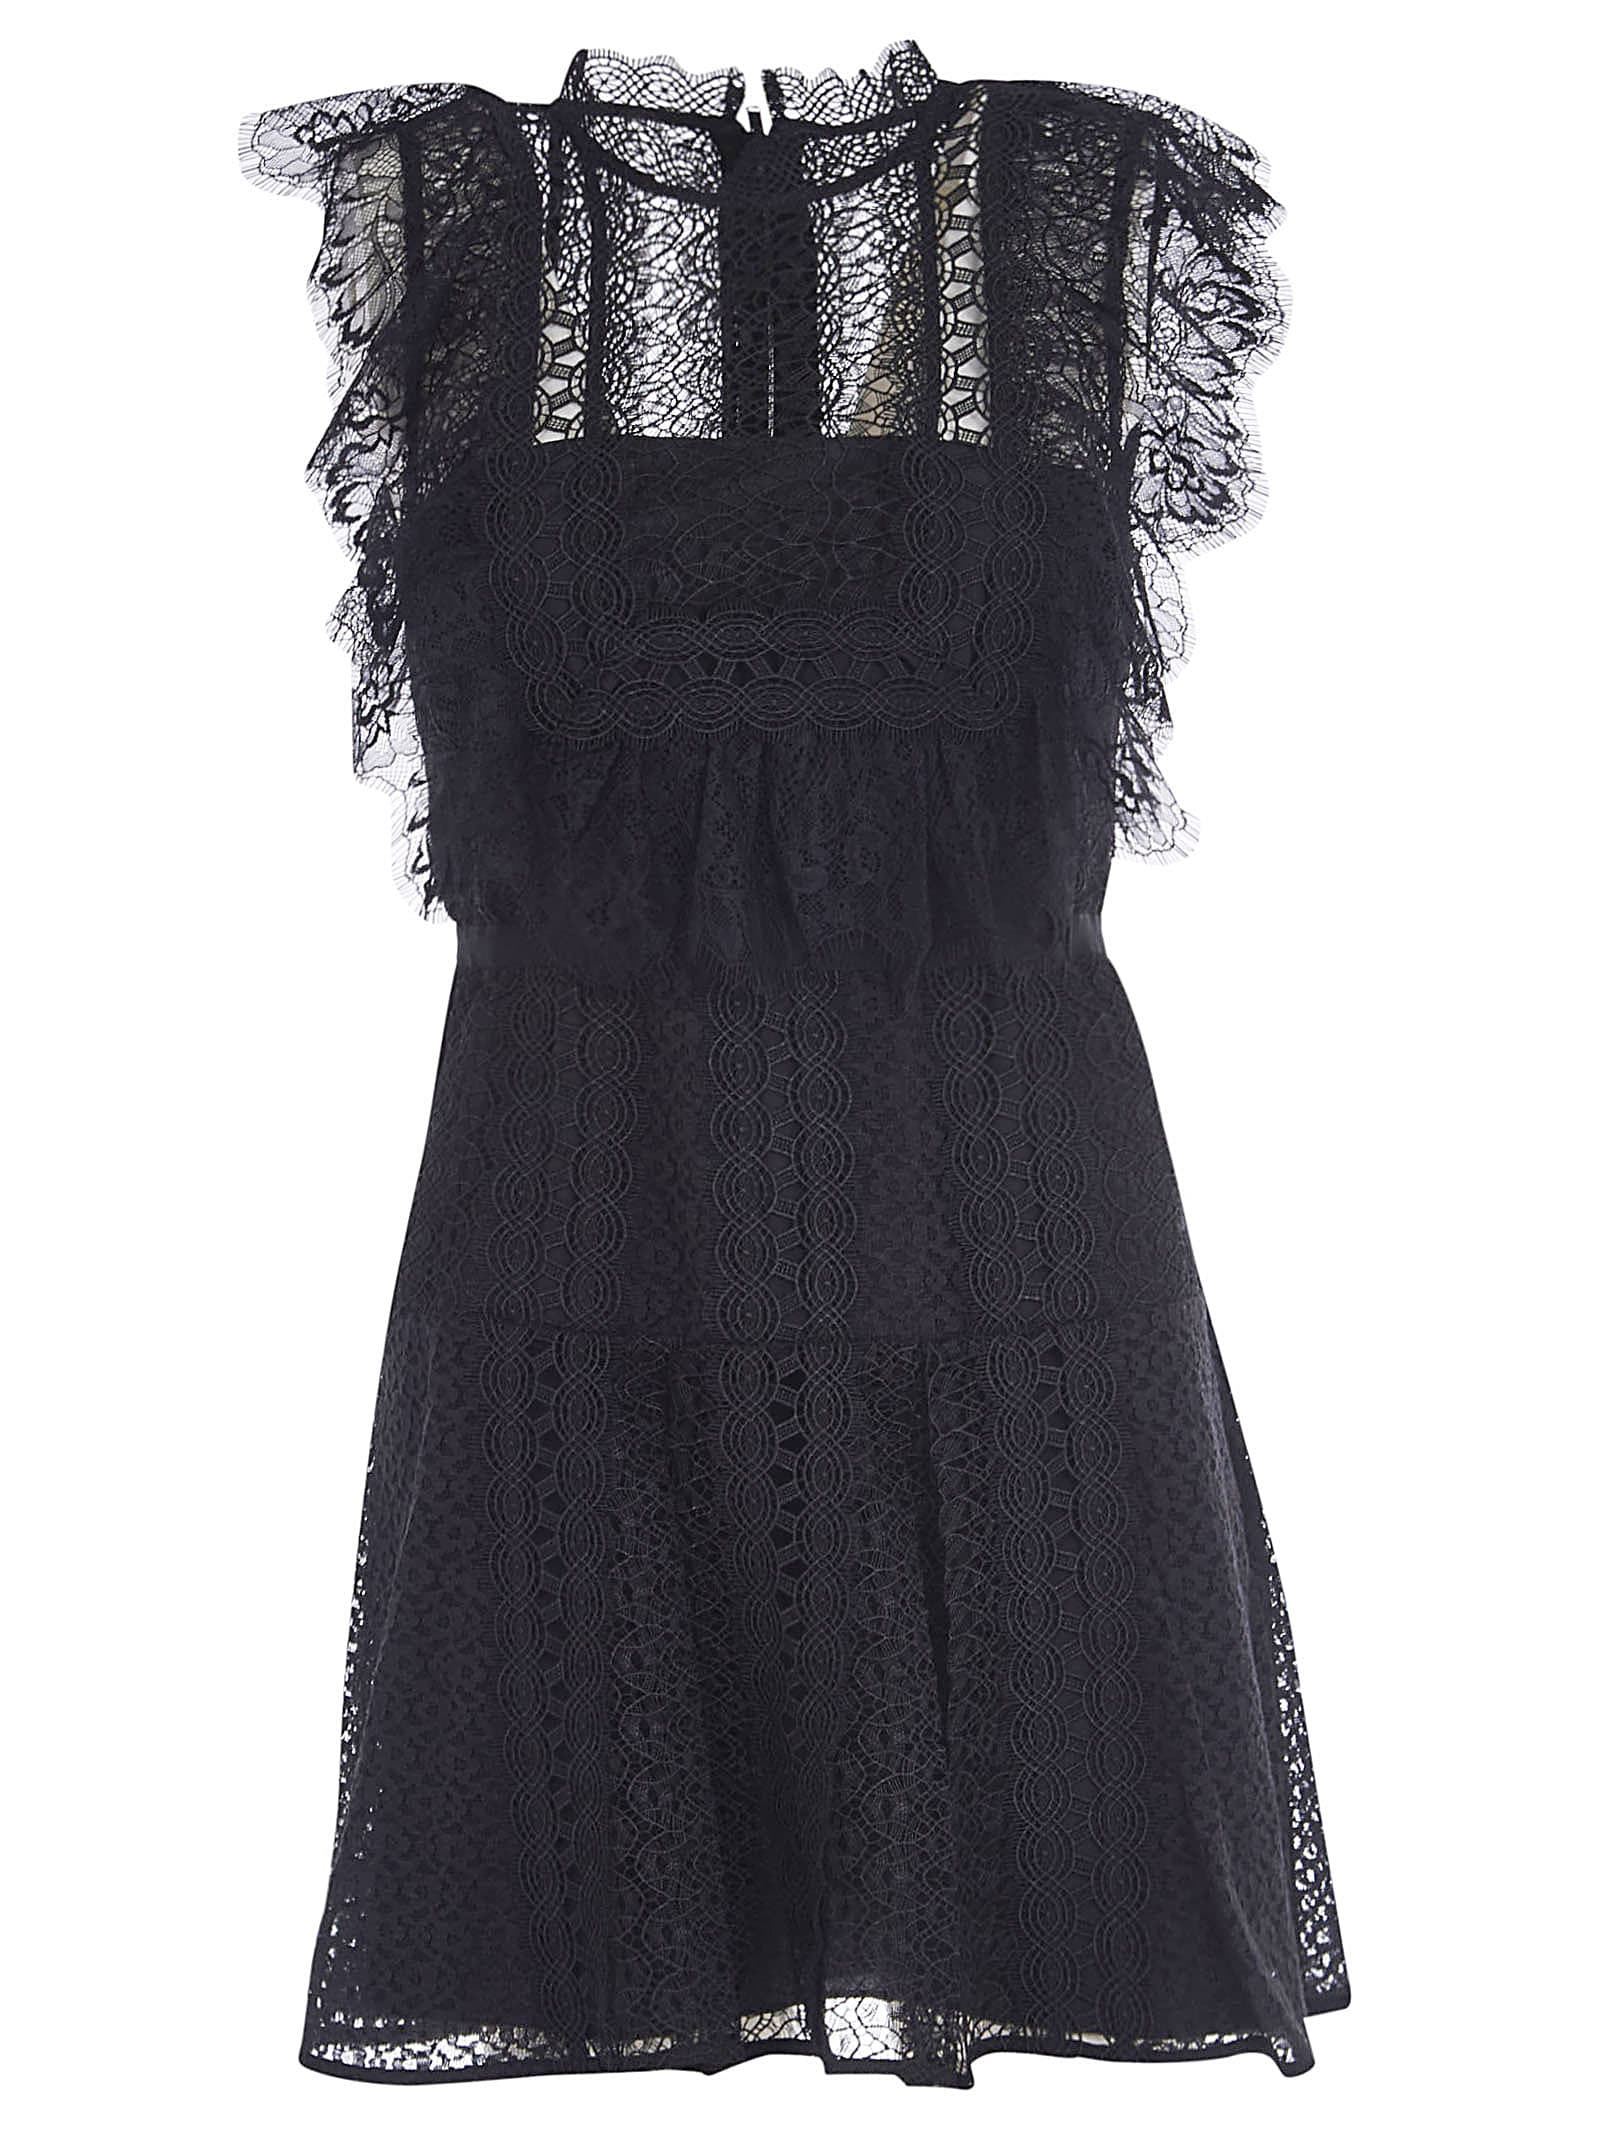 Buy self-portrait Black Lace Panel Mini Dress online, shop self-portrait with free shipping